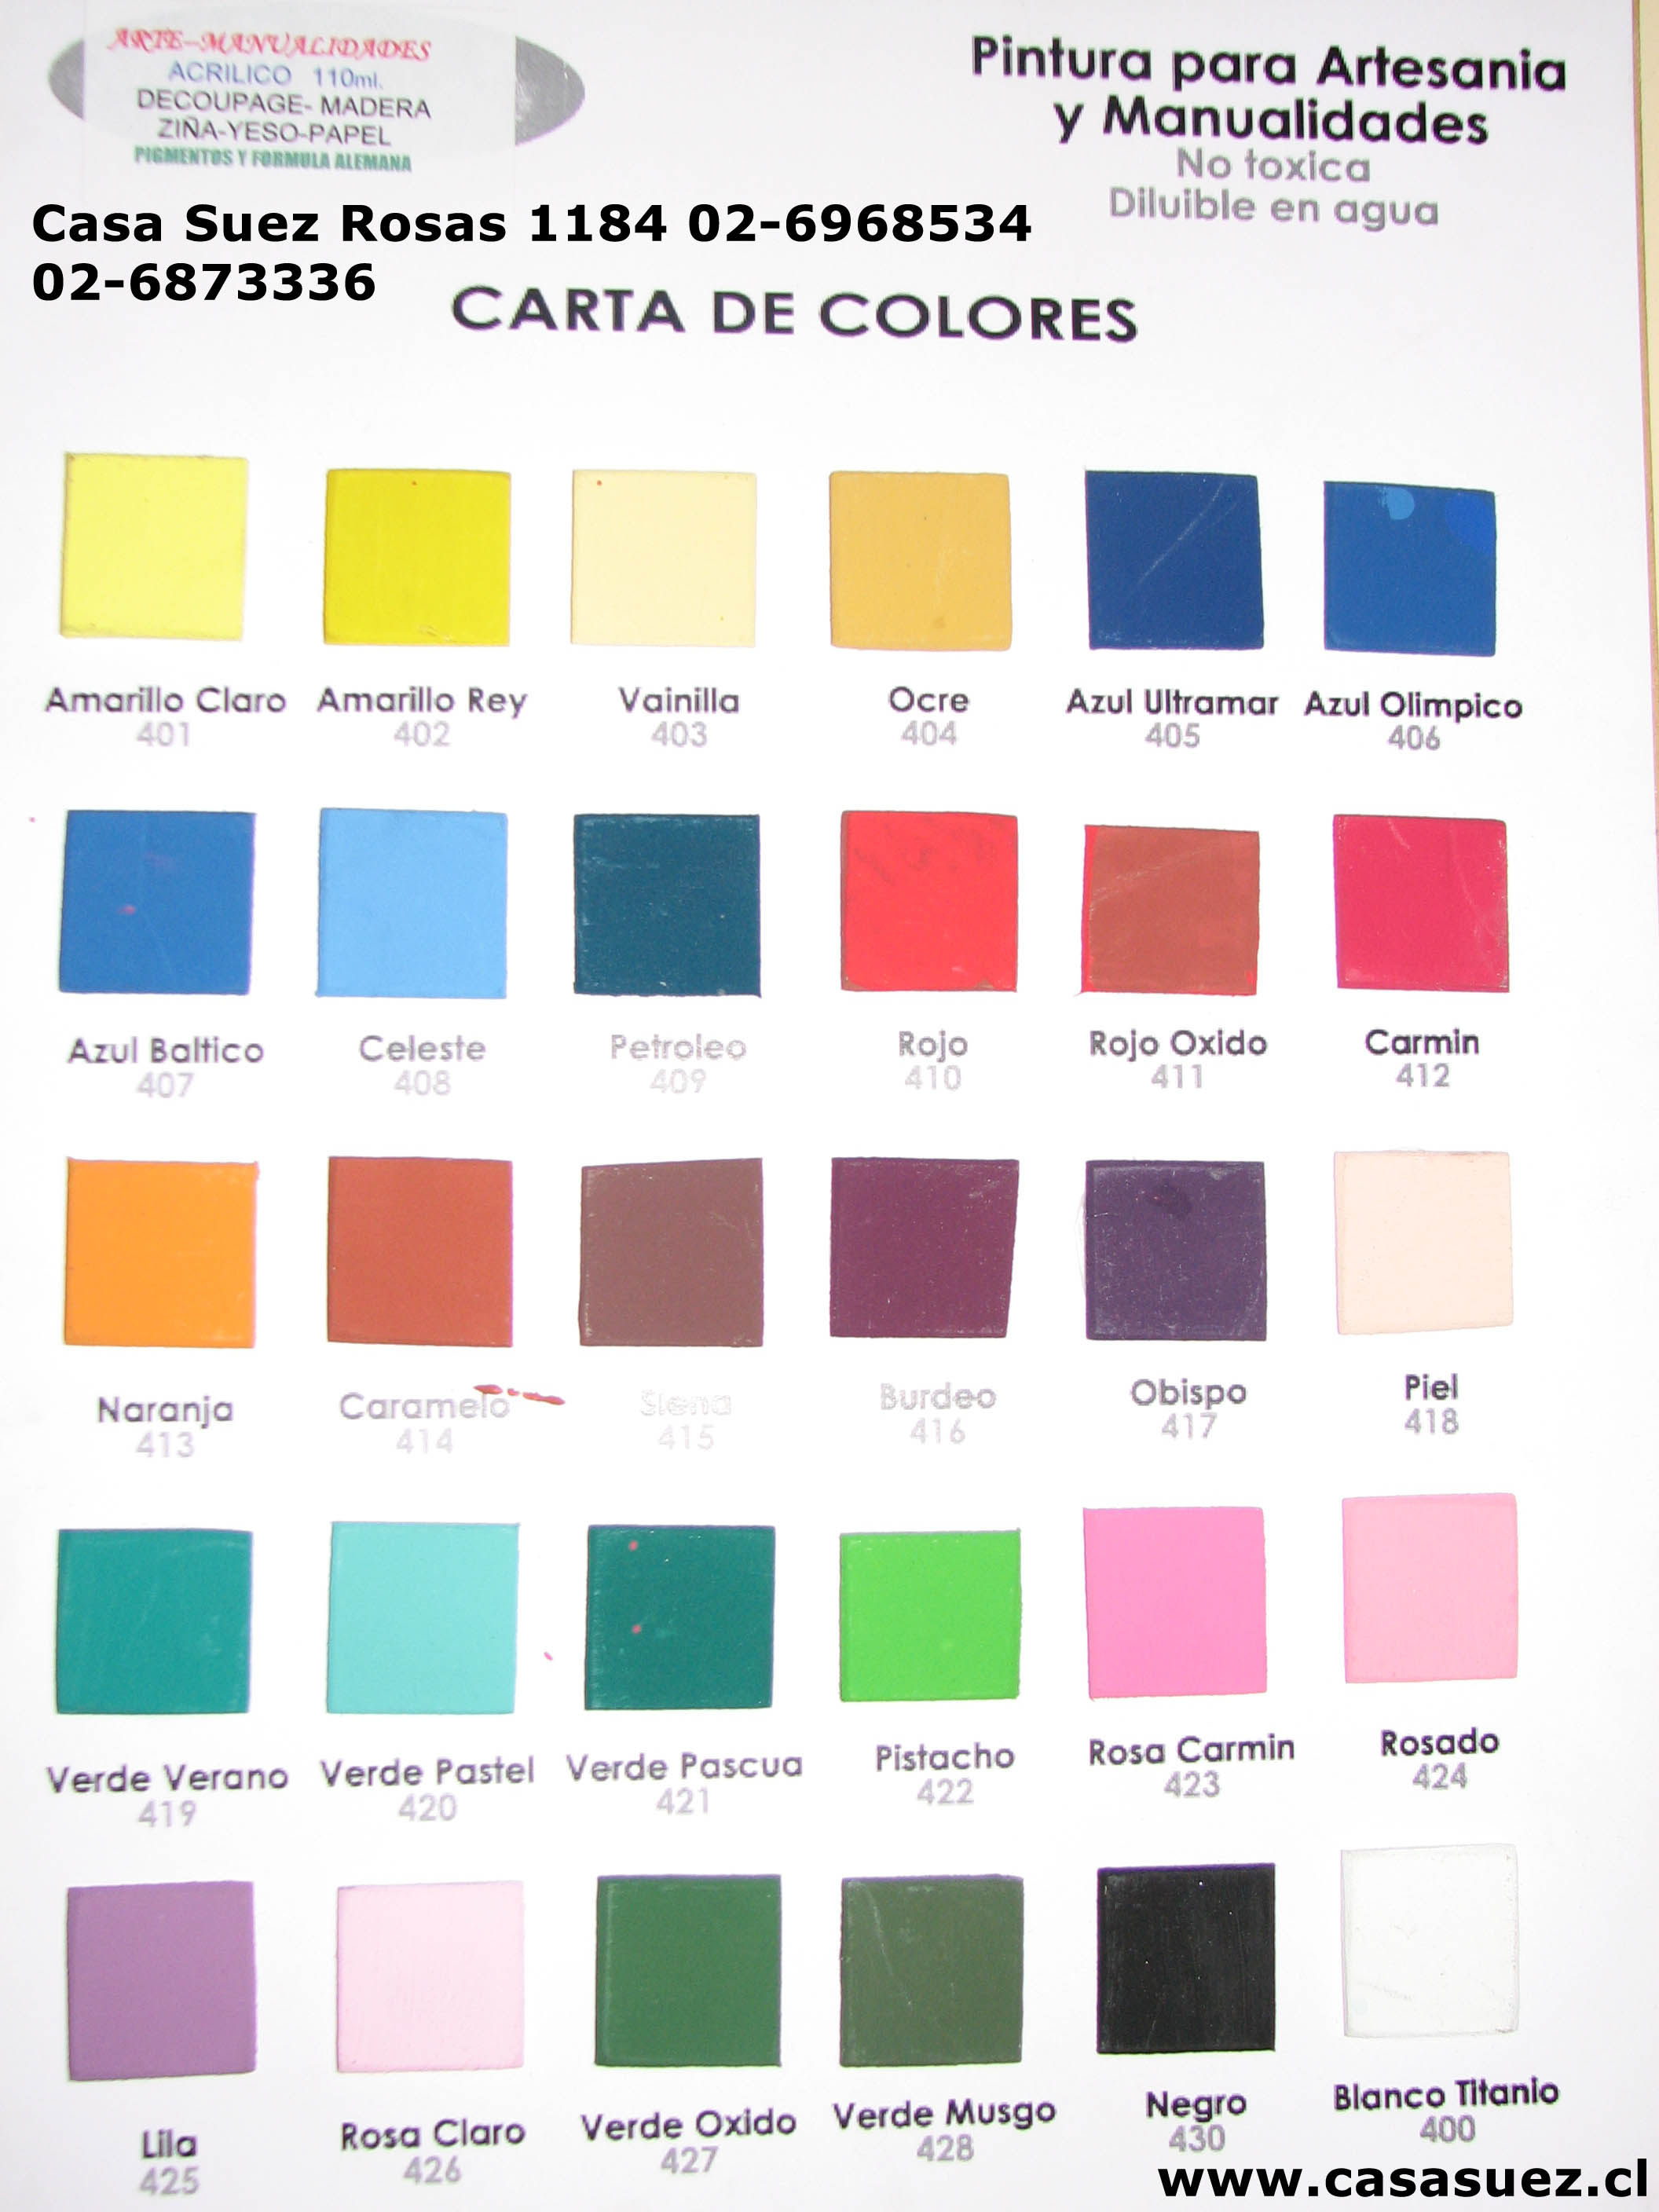 Pinturas carta de colores imagui - Pinturas de color ...